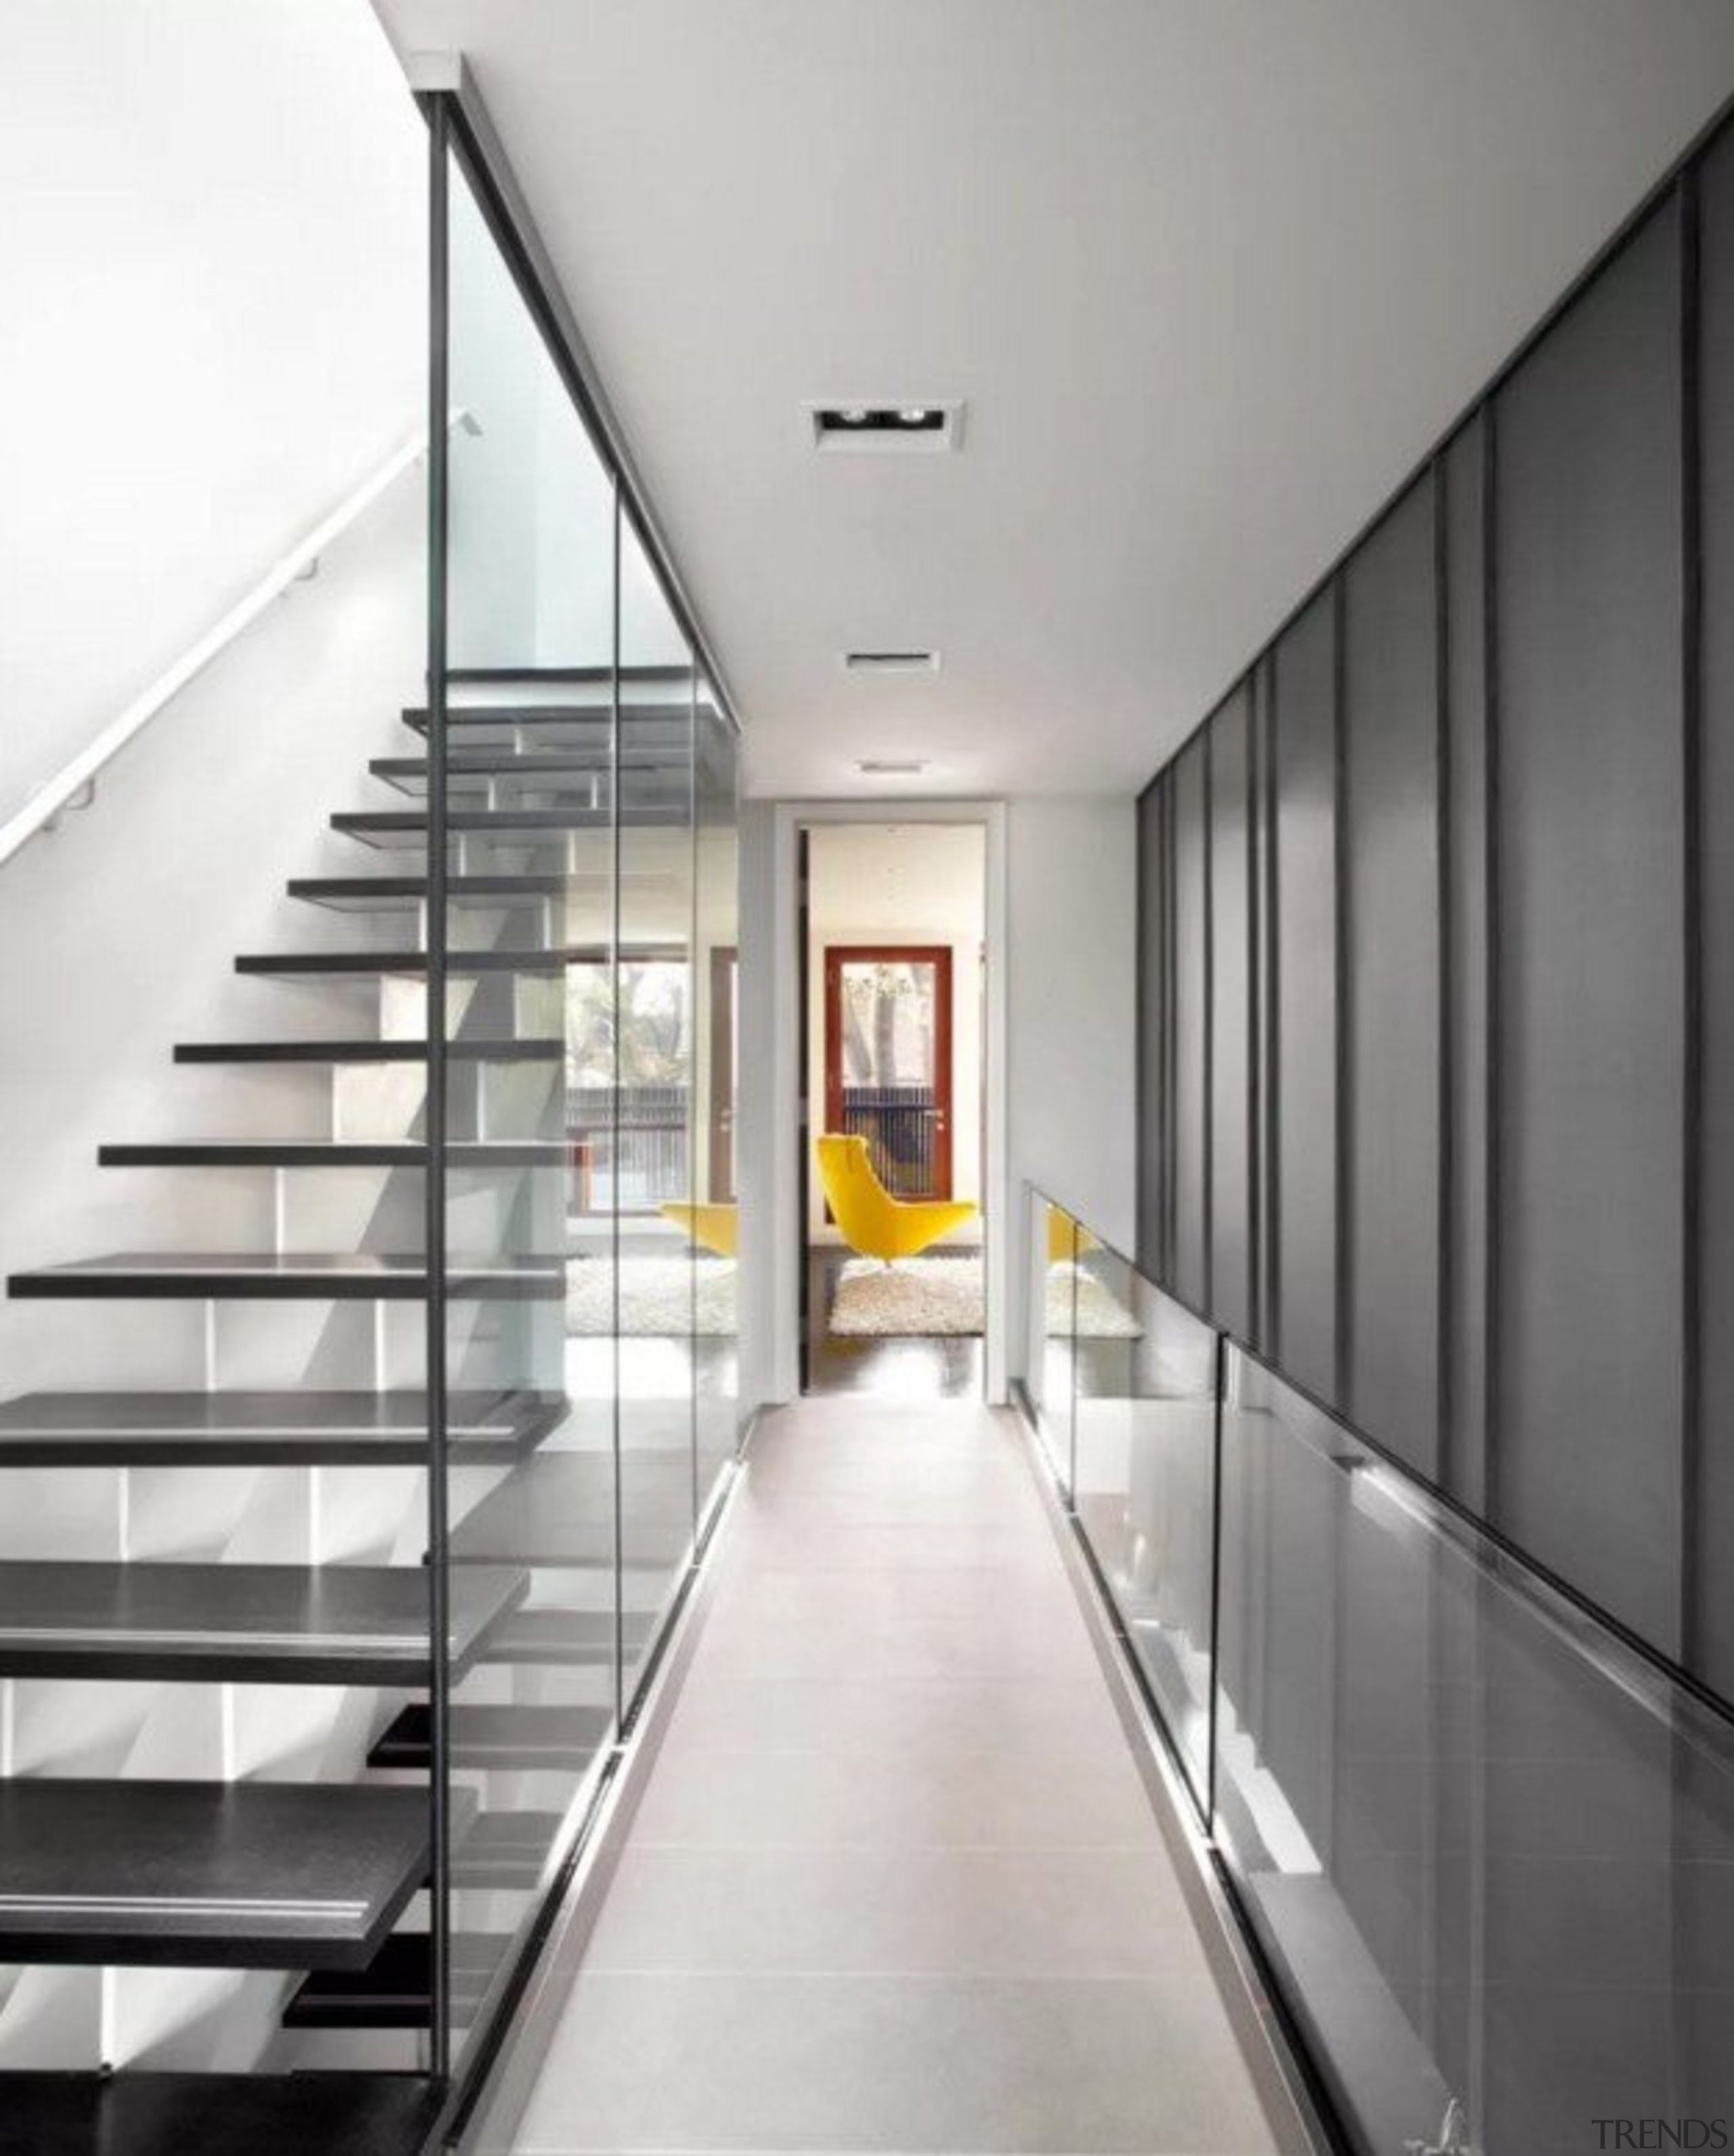 Glass Walls Keep This Floating Stai... - Gallery - 4